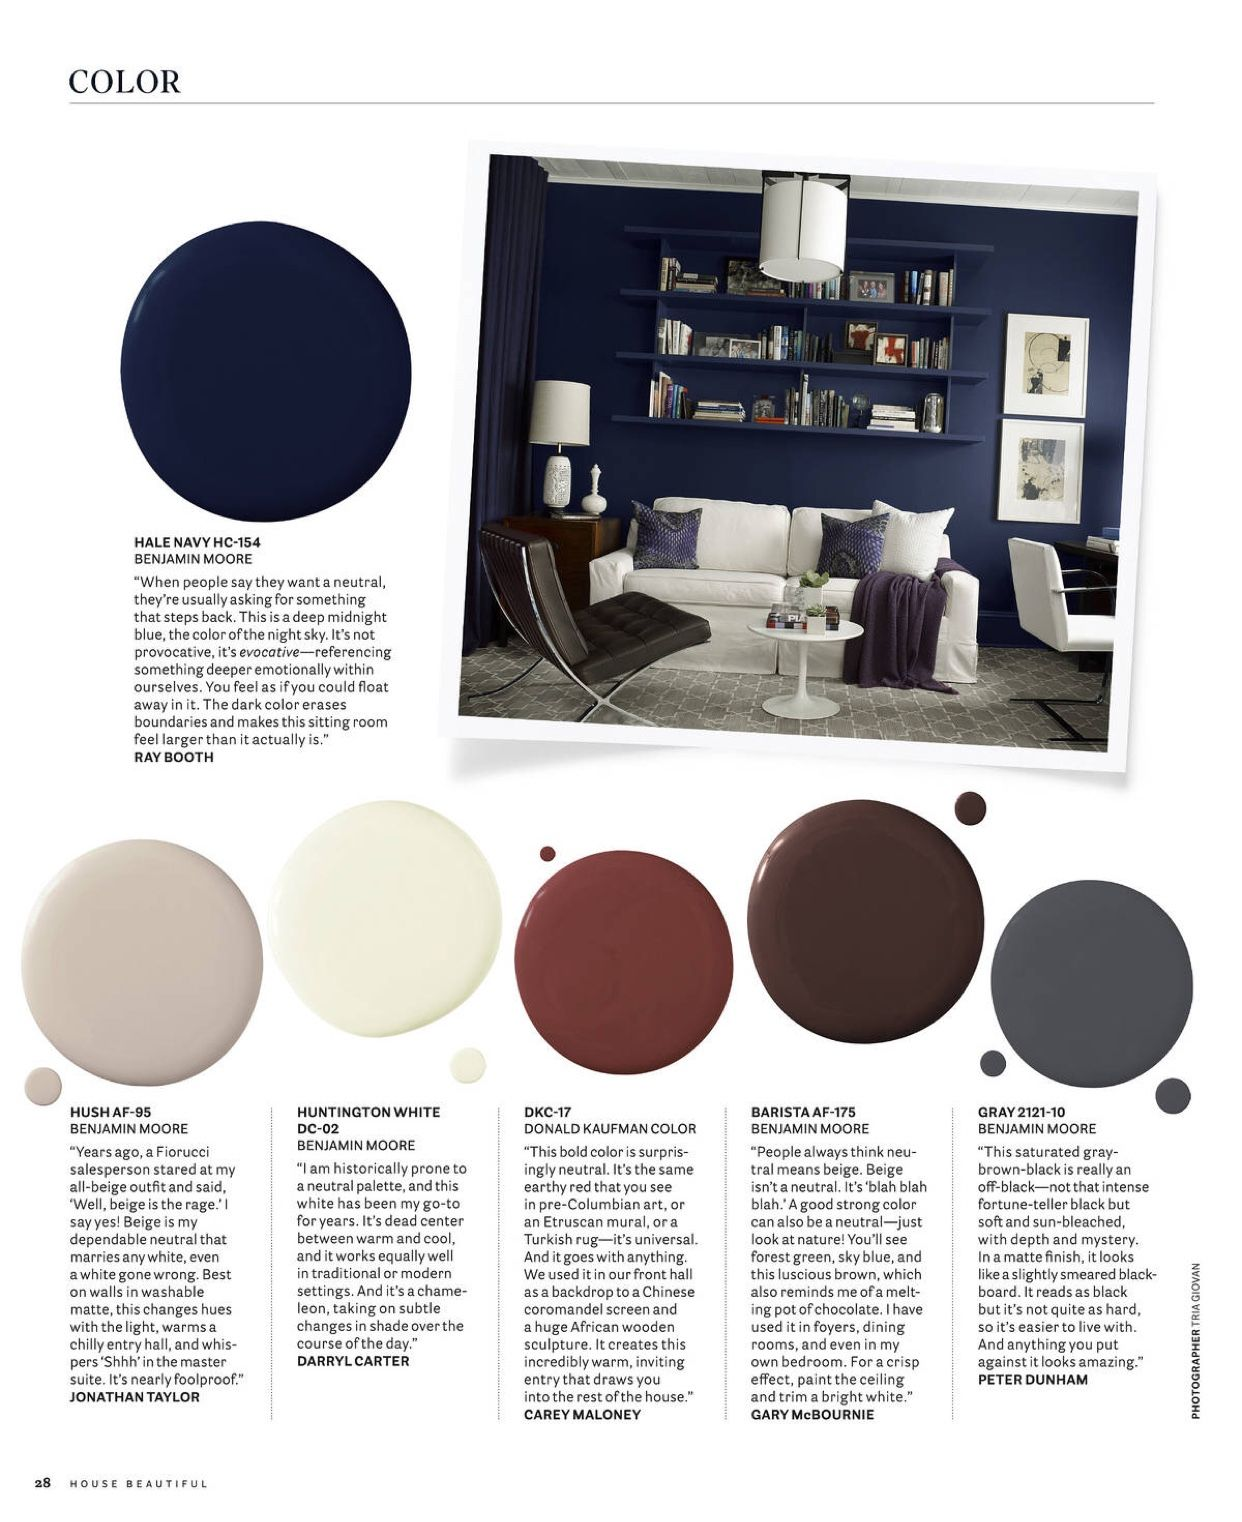 I saw this in the Free Preview issue of @HouseBeautiful.   http://bit.ly/1ySrLfl